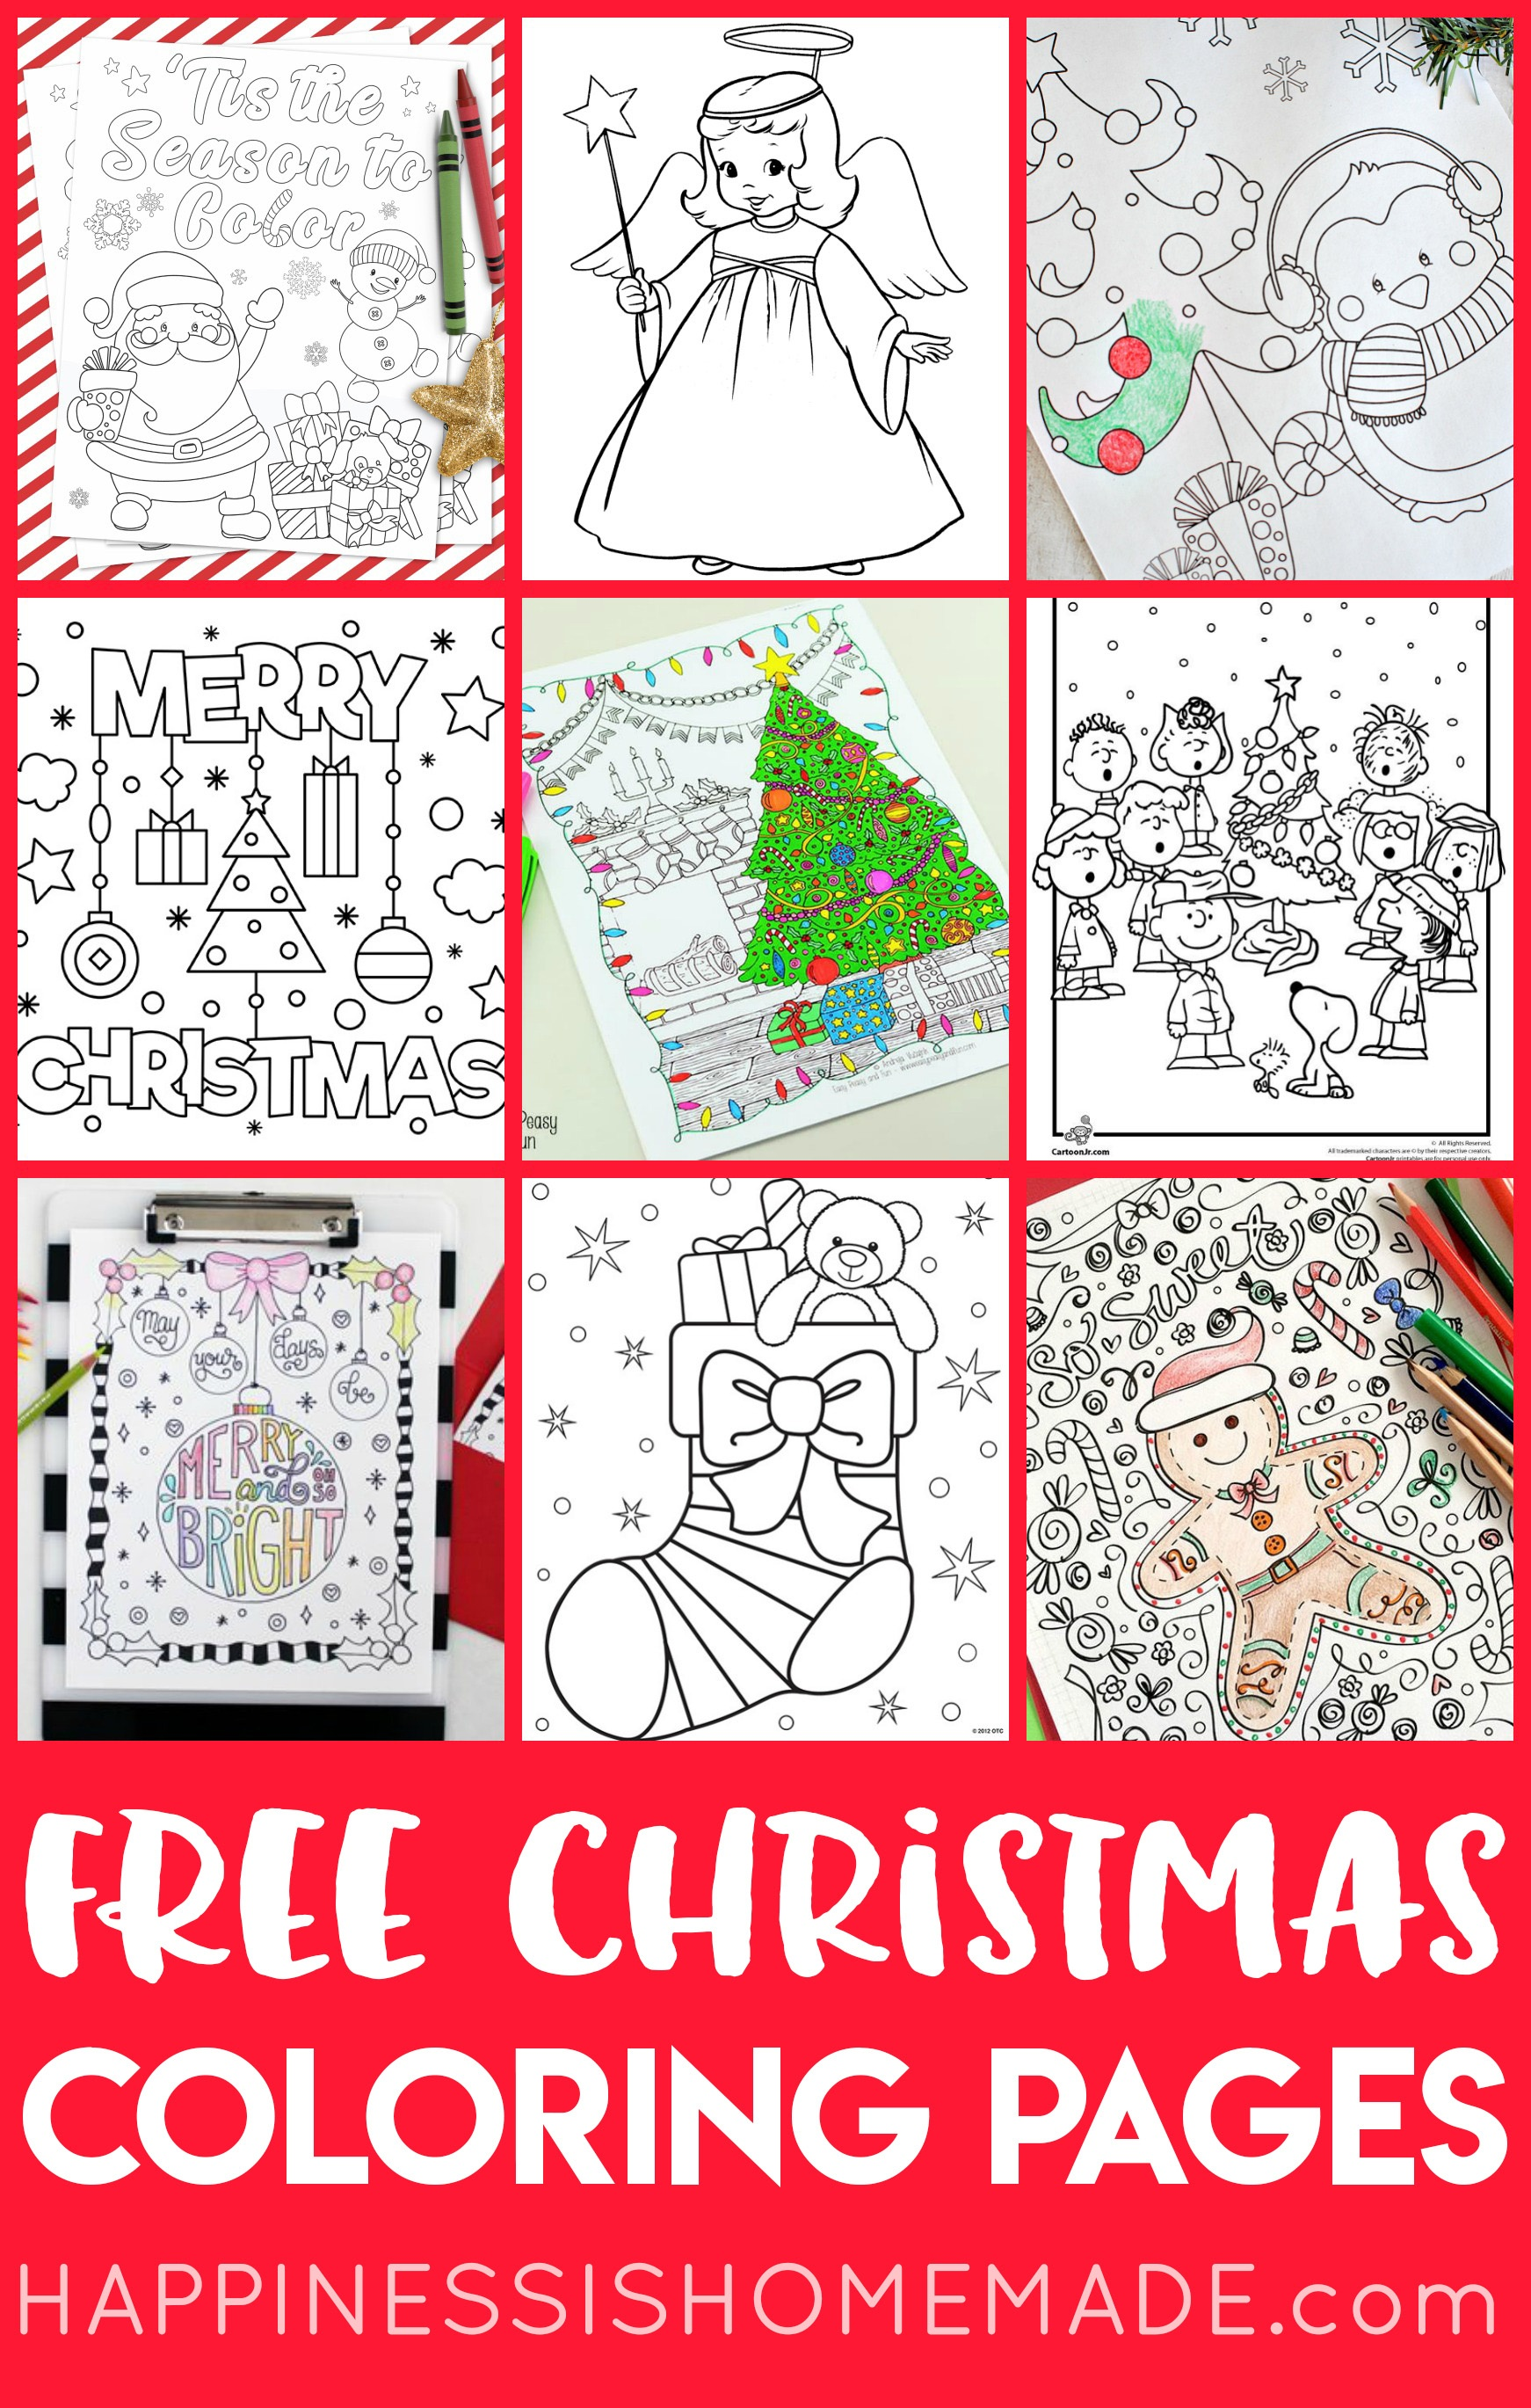 Free Christmas Coloring Pages For Adults And Kids - Happiness Is - Free Printable Christmas Designs